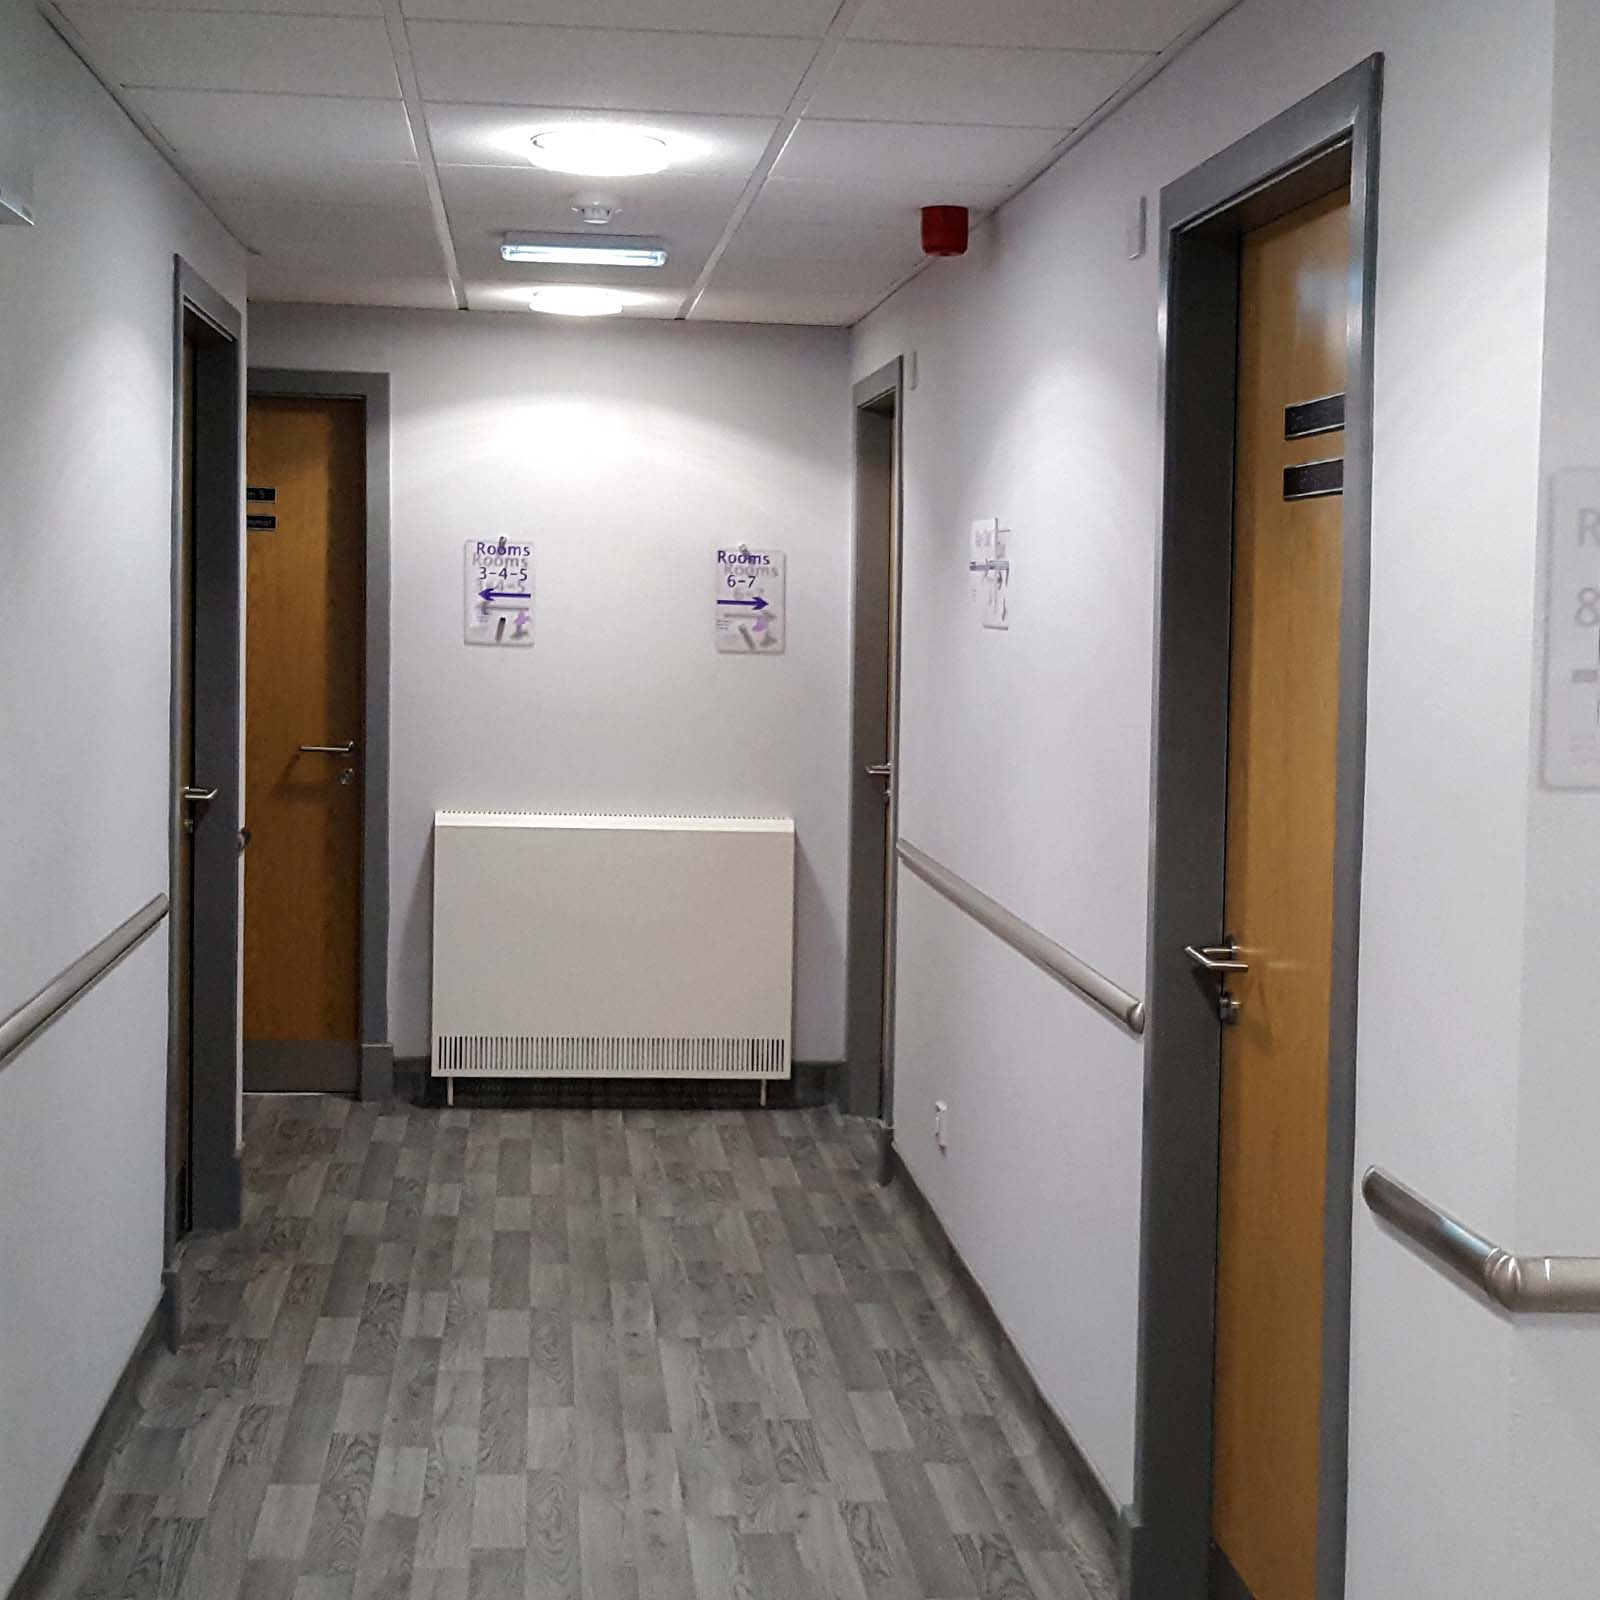 McCue Stainless Steel Wall Mounted Bumper System